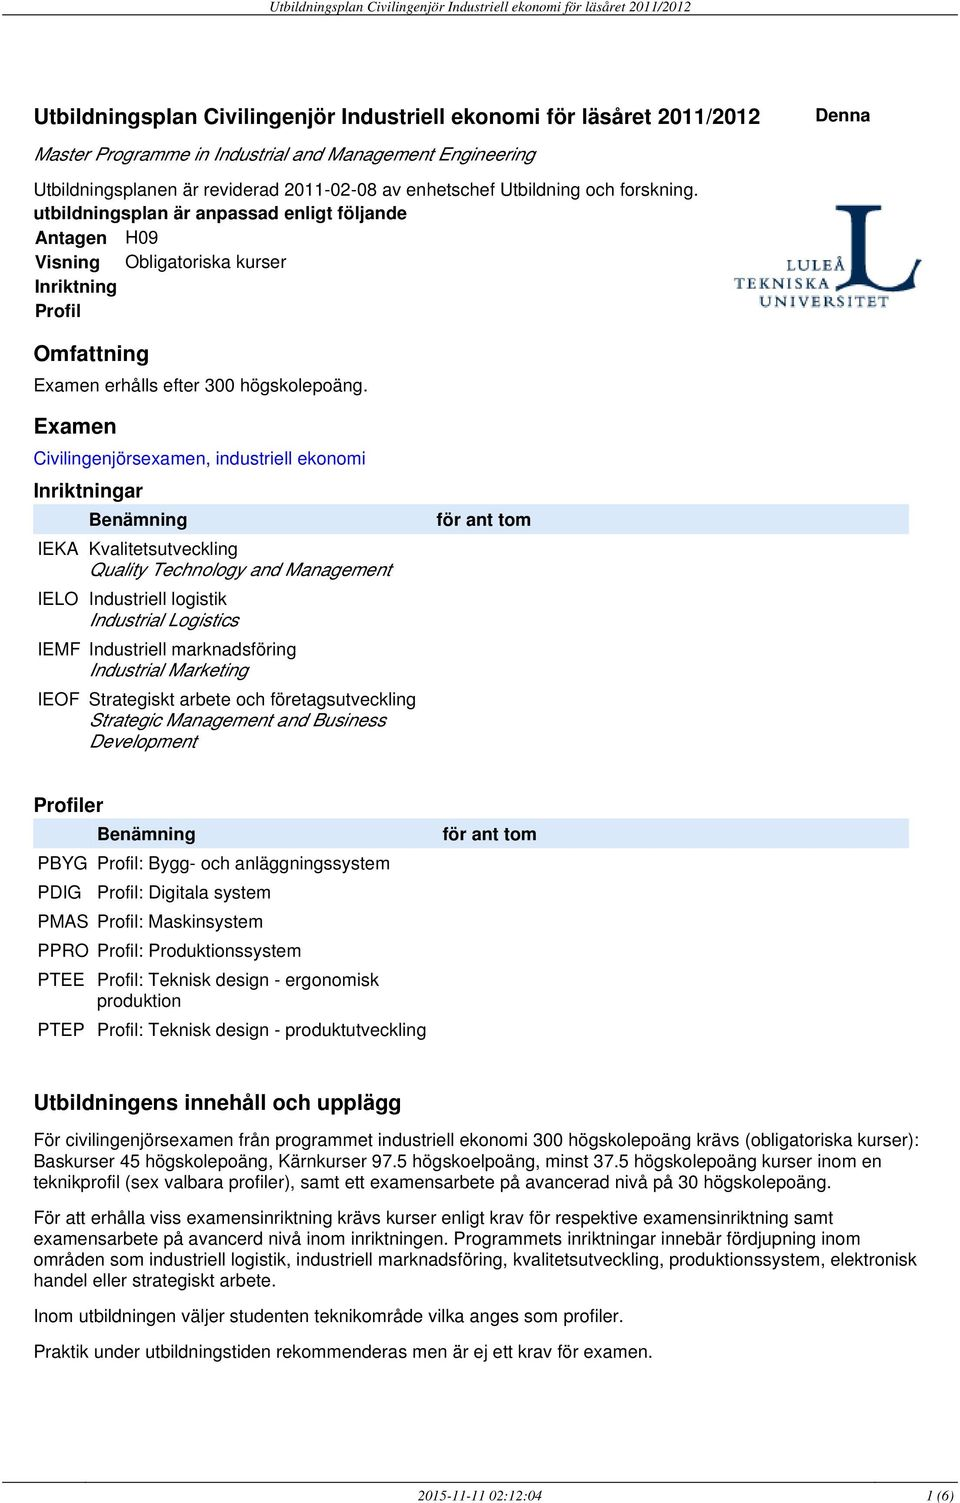 Examen Civilingenjörsexamen, industriell ekonomi Inriktningar Benämning IEKA Kvalitetsutveckling Quality Technology and Management IELO Industriell logistik Industrial Logistics IEMF Industriell